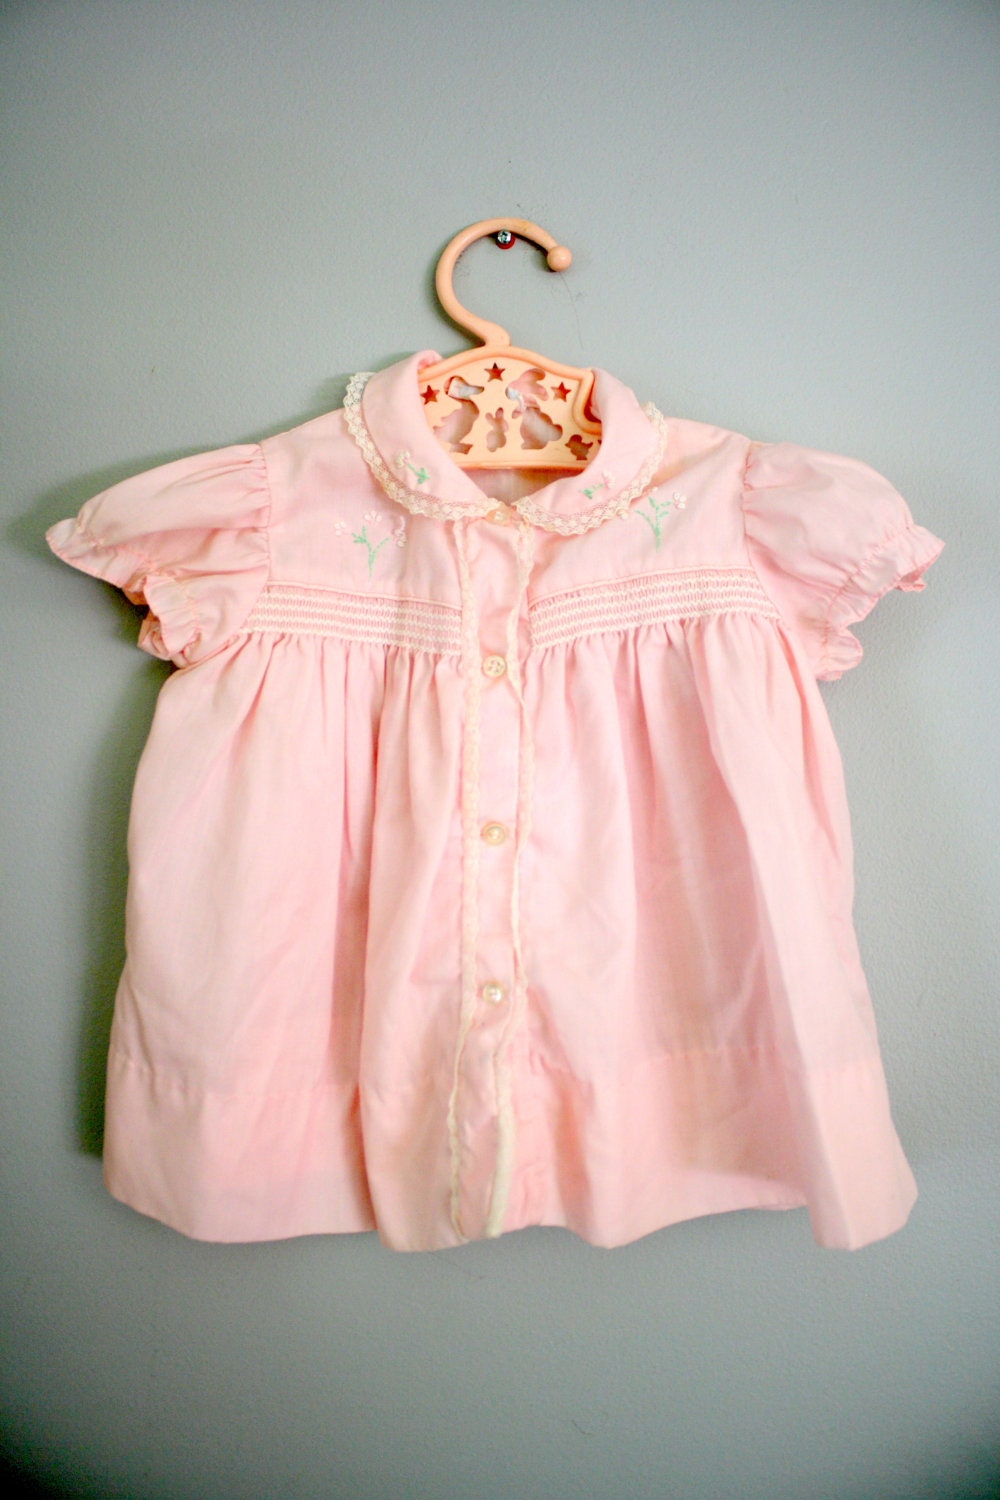 60s 70s Pink Smocked Button Down Dress Sz 9-12 months - babyshapes